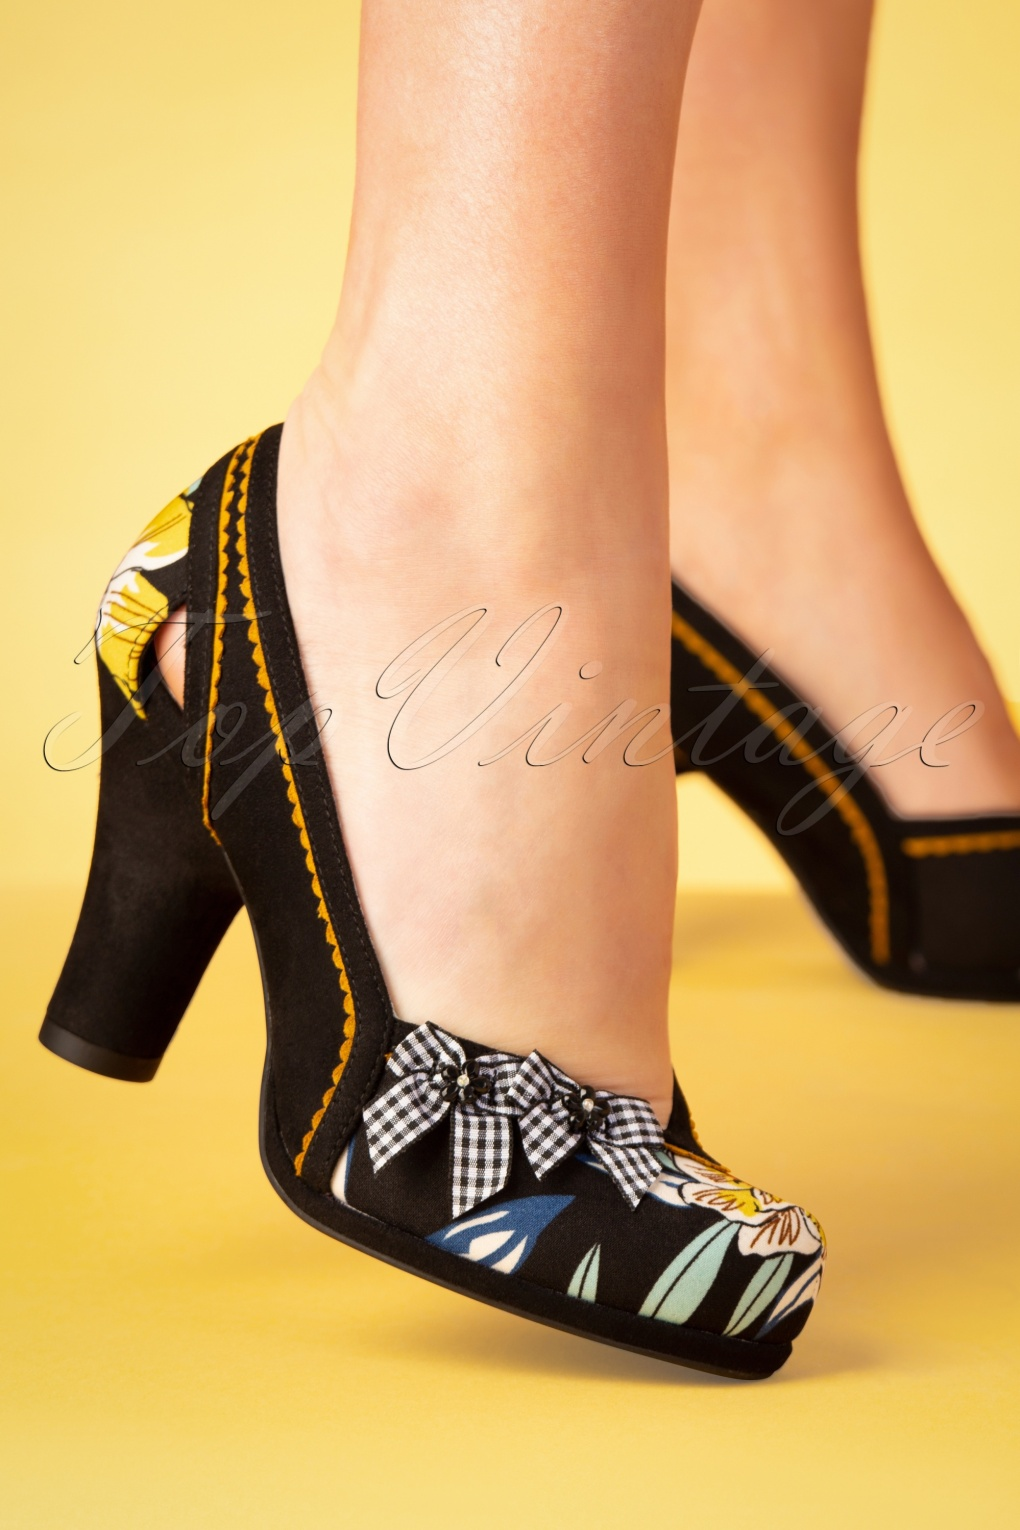 Pin Up Shoes- Heels, Pumps & Flats 60s Livia Floral Pumps in Black �68.59 AT vintagedancer.com